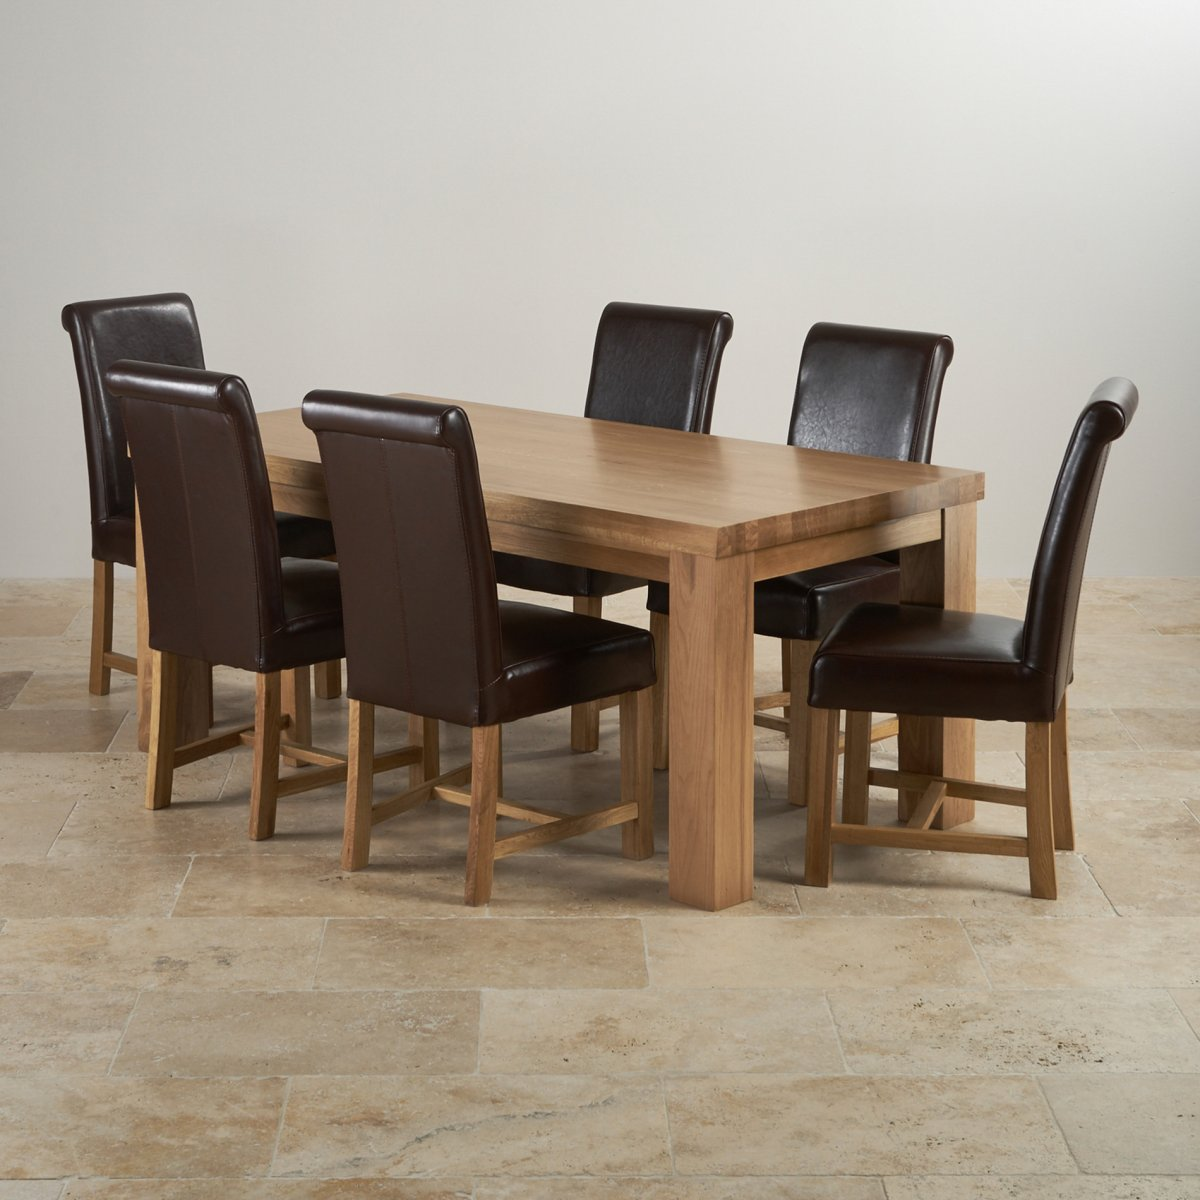 Oak 6ft X 3ft Dining Table Set Fresco Brown Leather Chairs